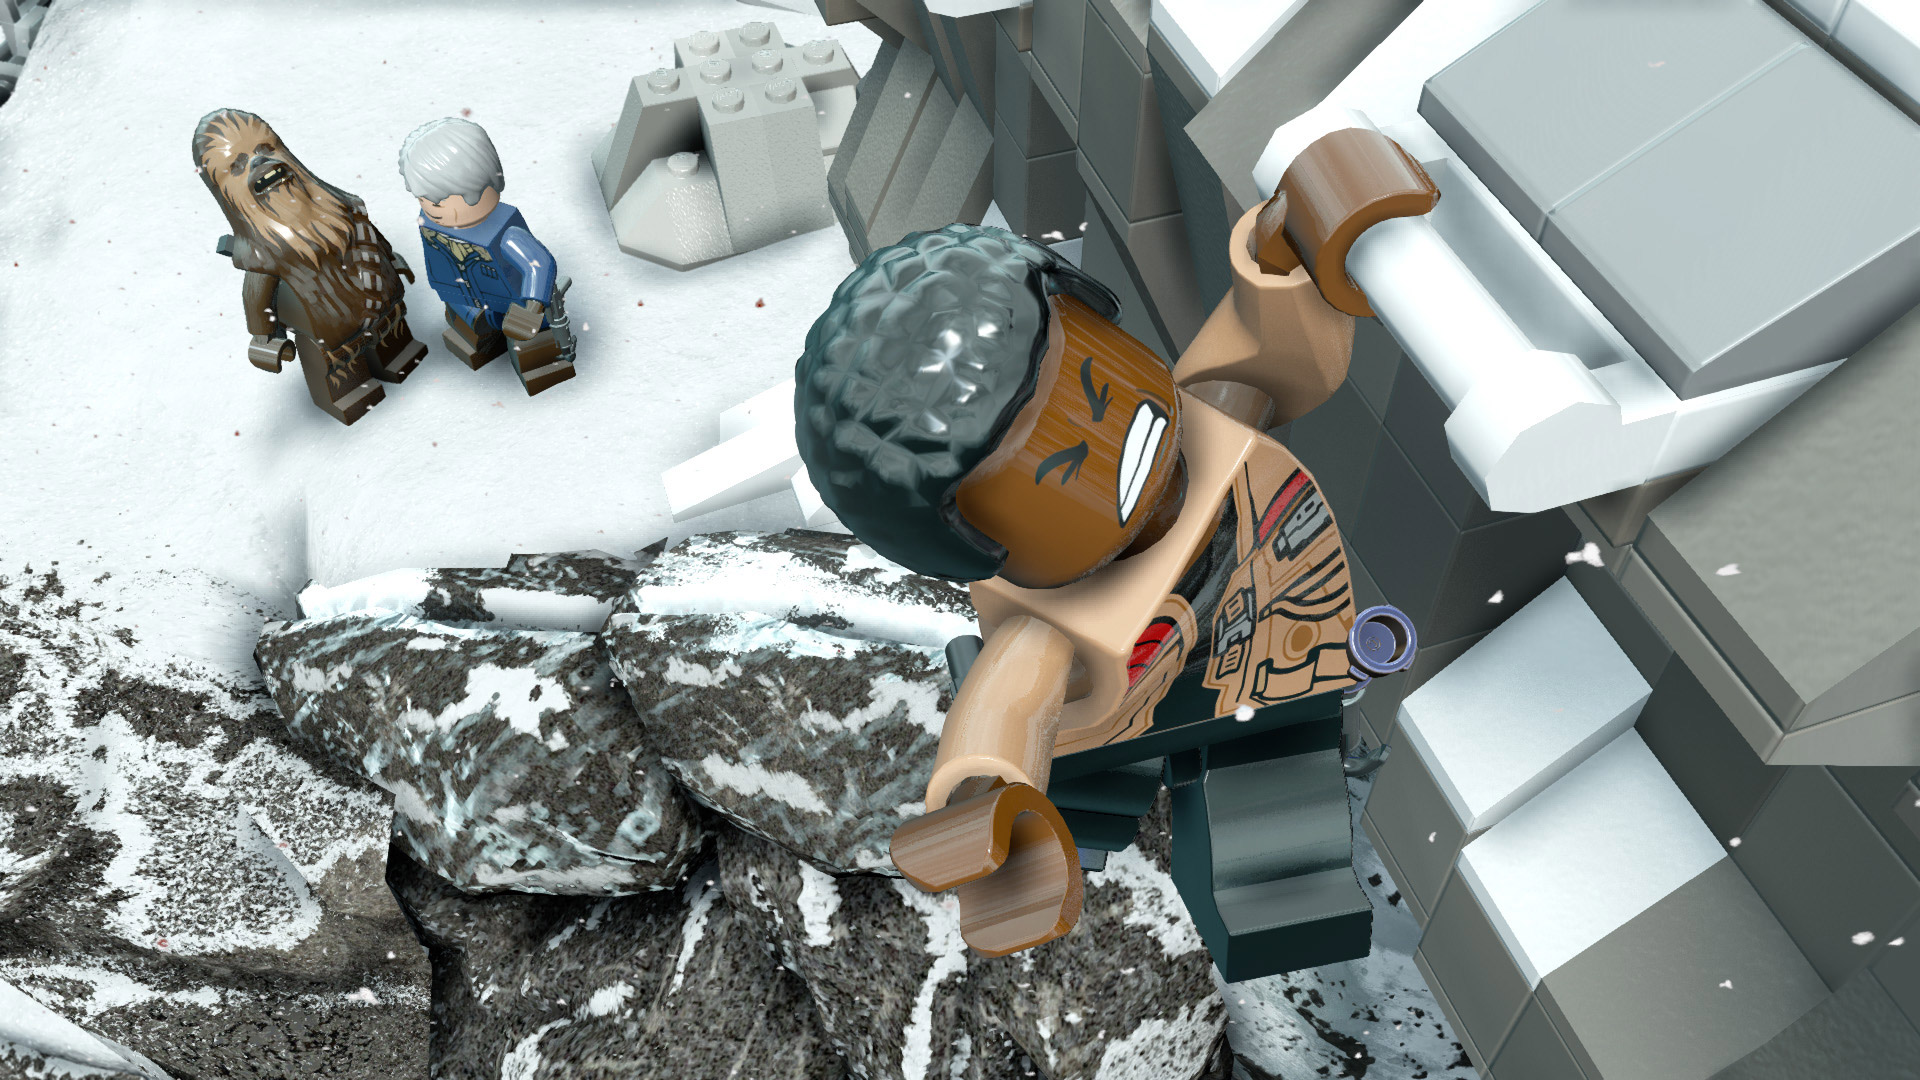 Lego Star Wars: The Force Awakens Wallpaper in 1920x1080